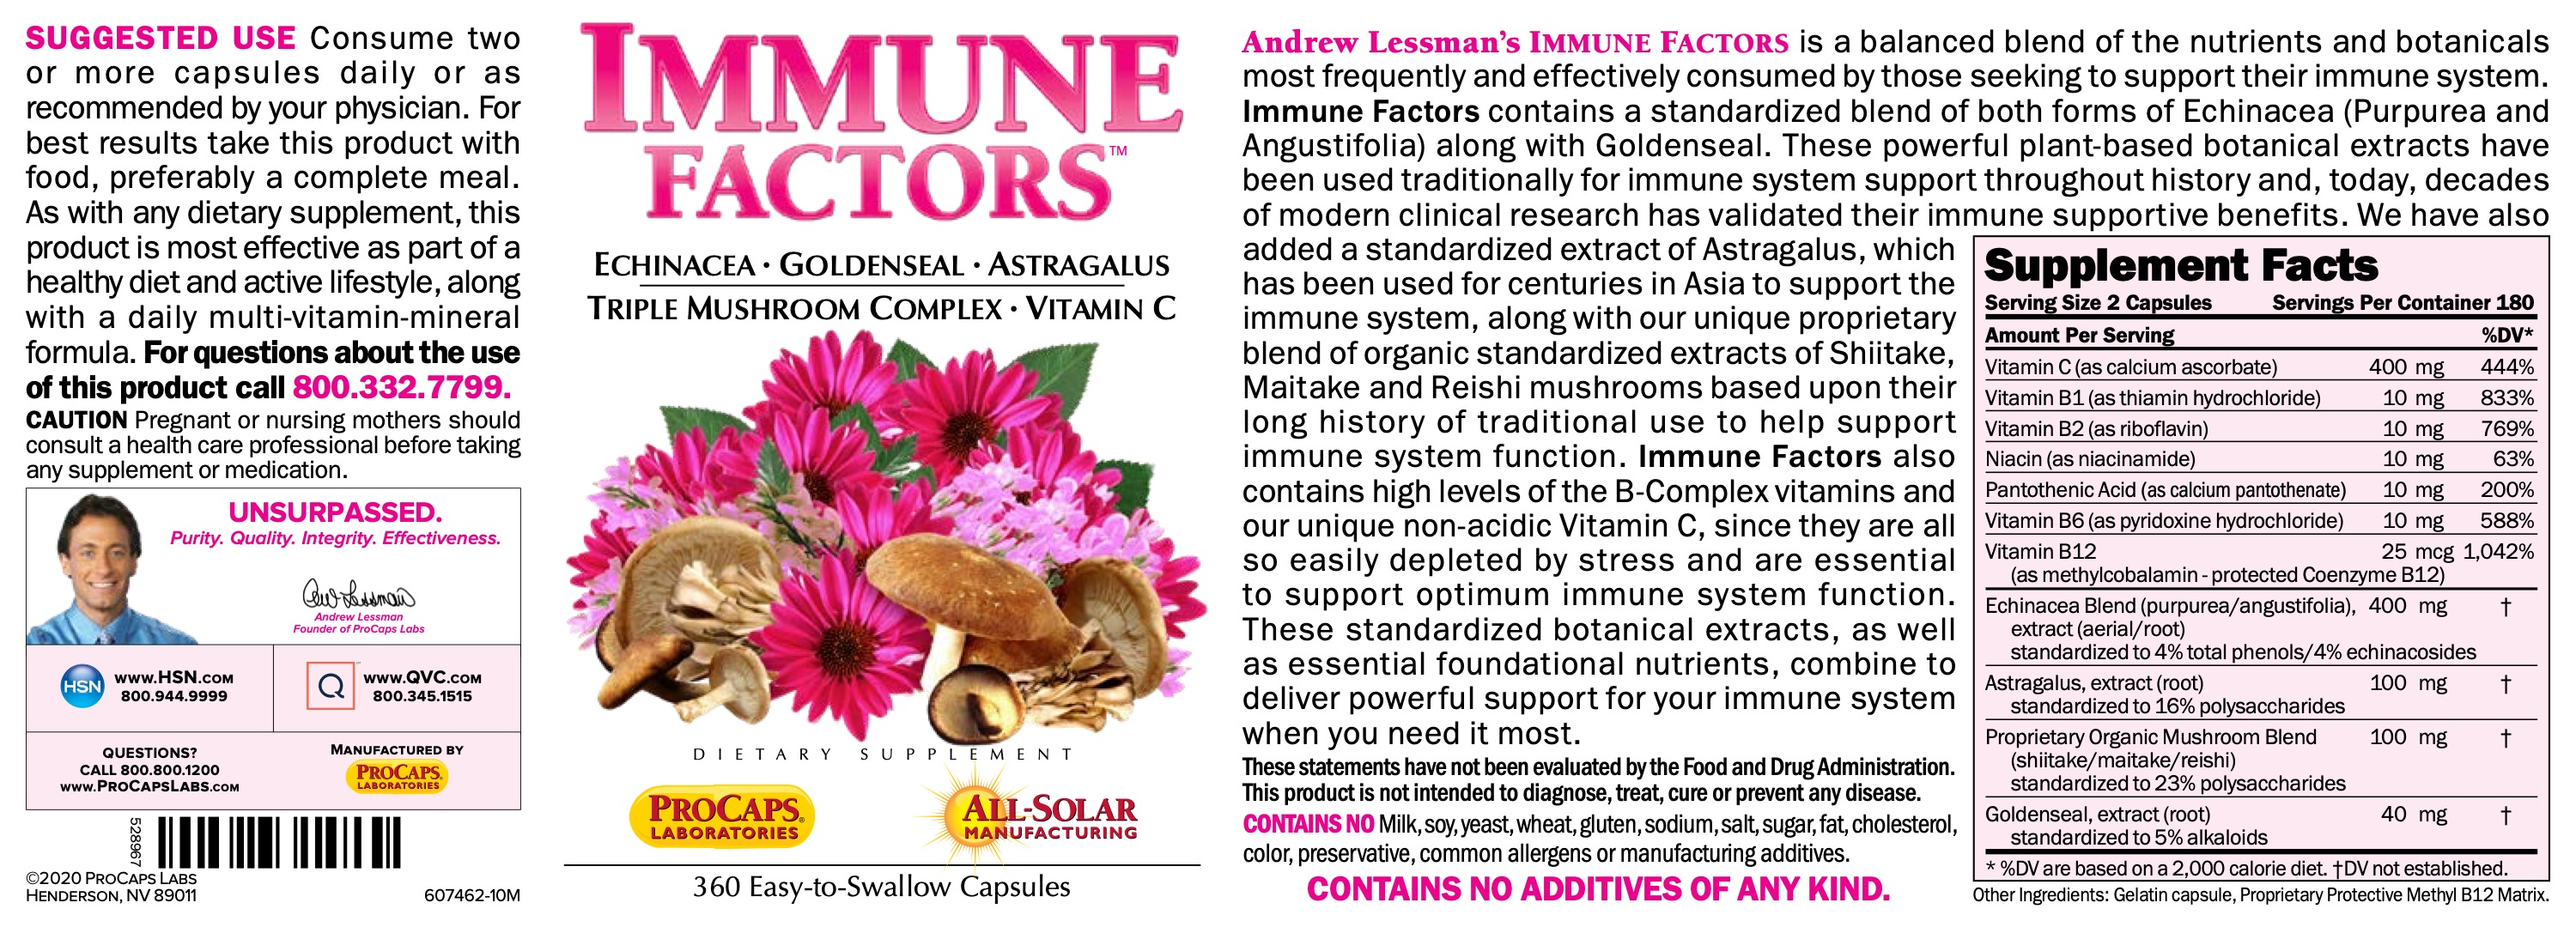 Immune-Factors-Capsules-Immune-Support